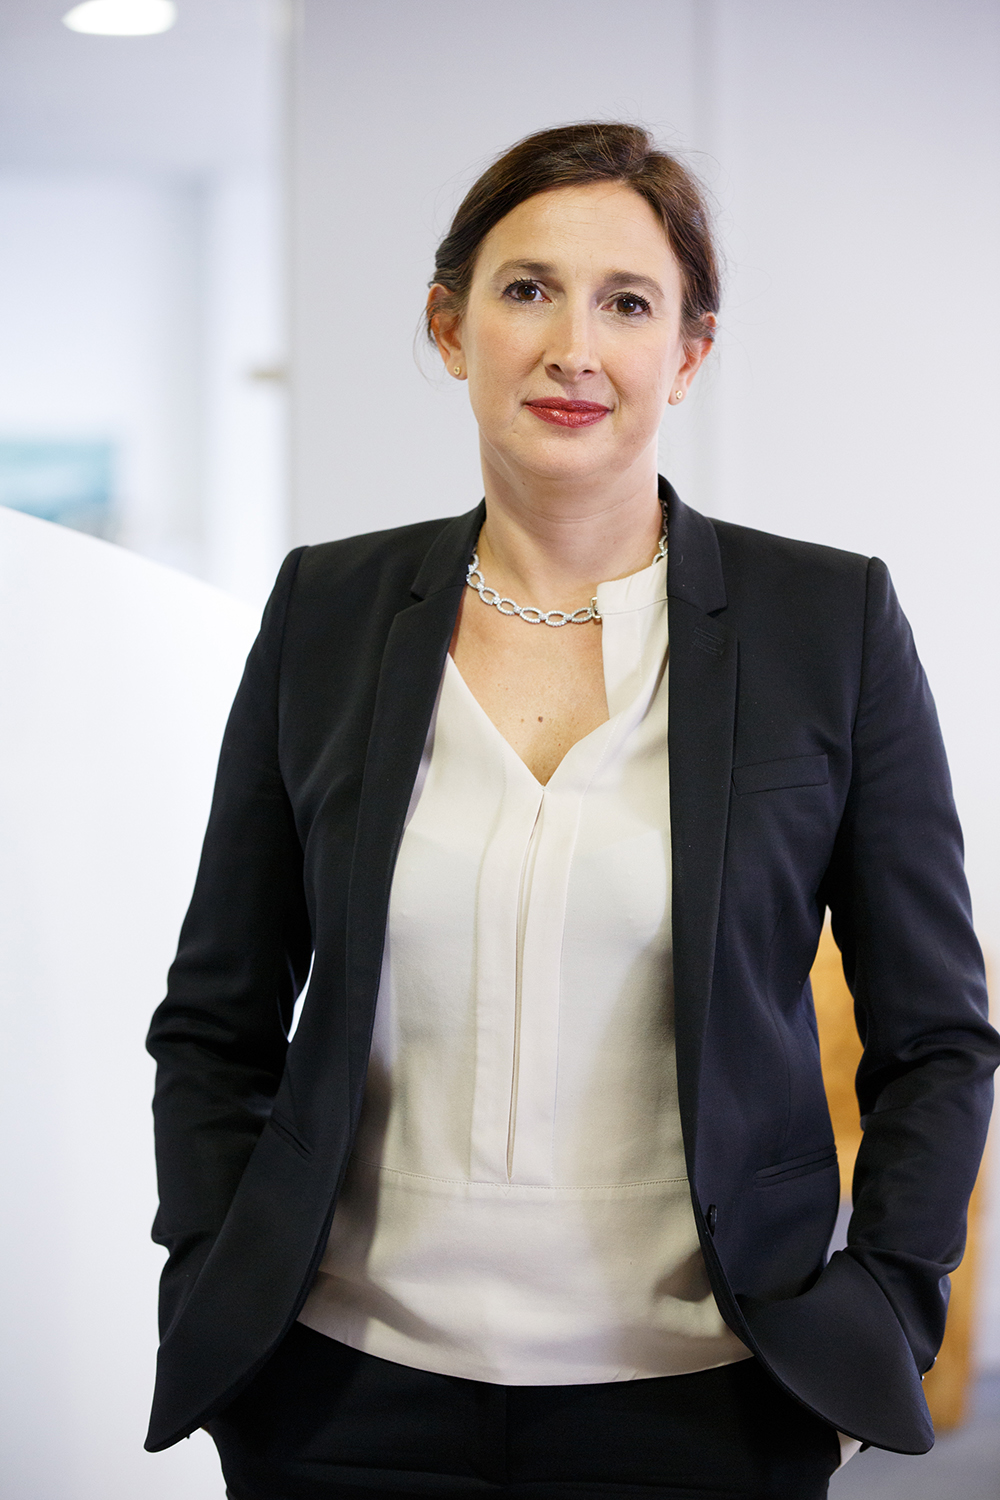 Cécile Tricault Appointed Regional Head for Prologis Southern Europe